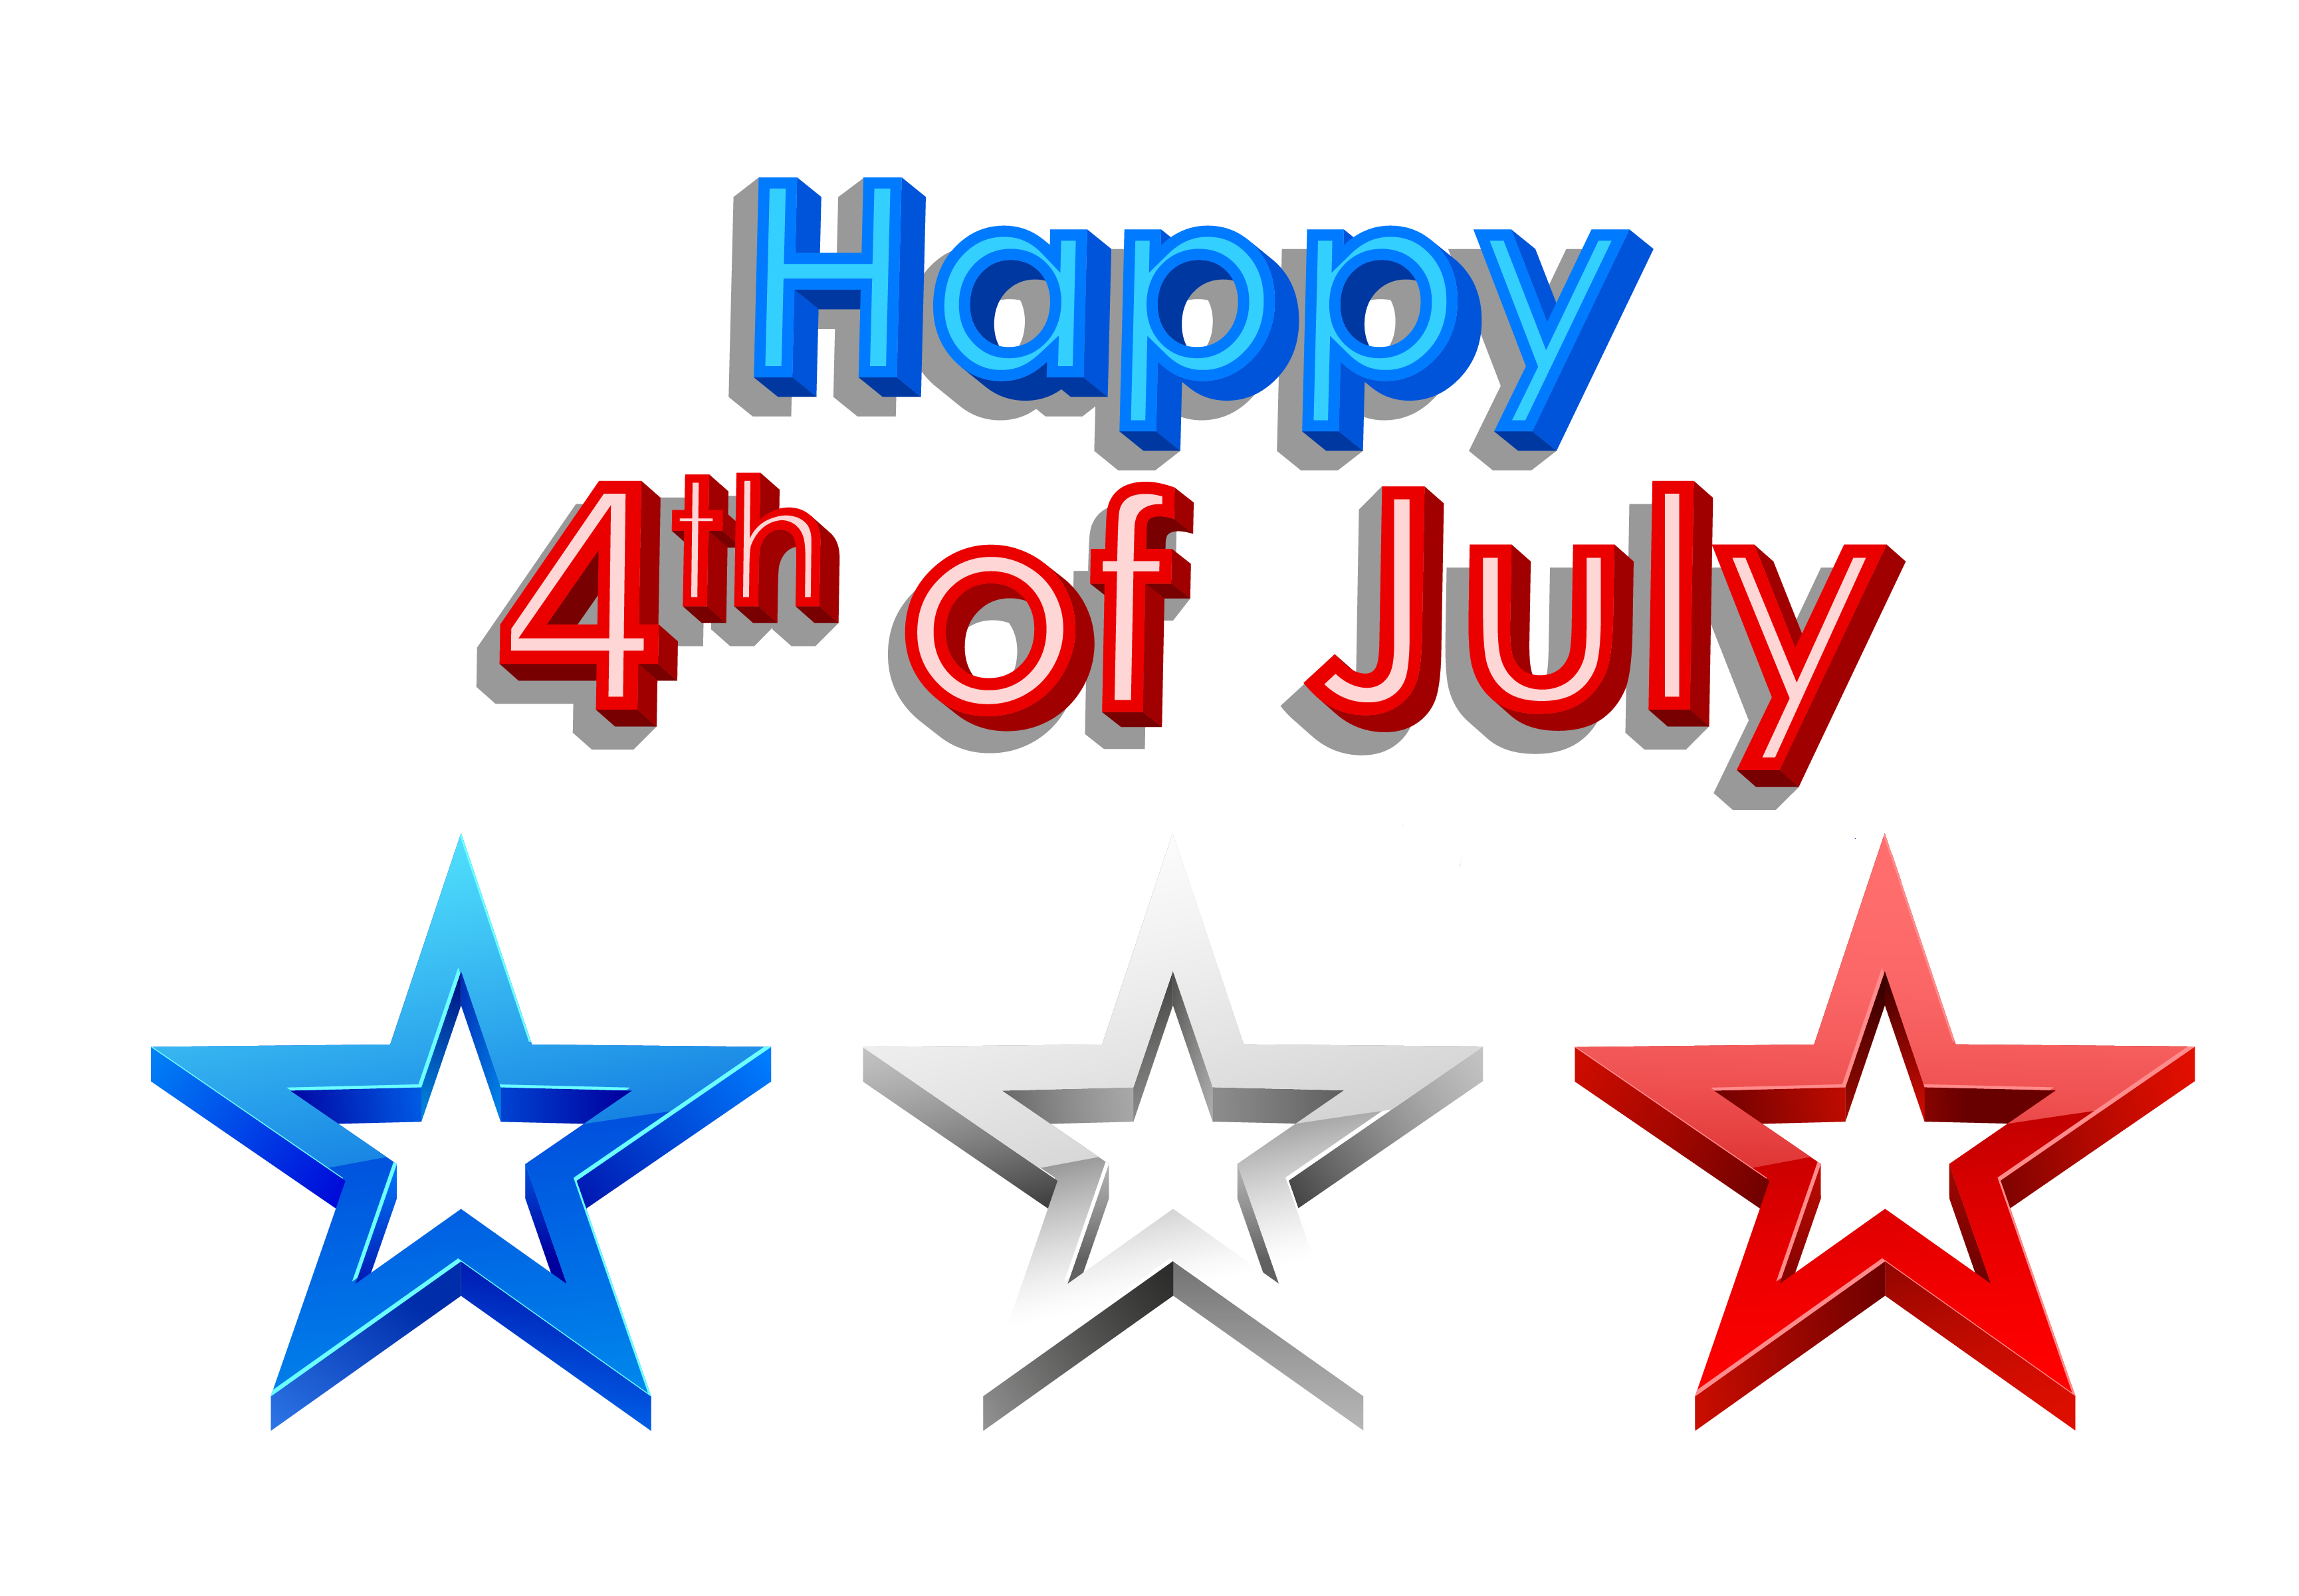 4th of july fireworks clipart png-4th of july fireworks clipart png-2